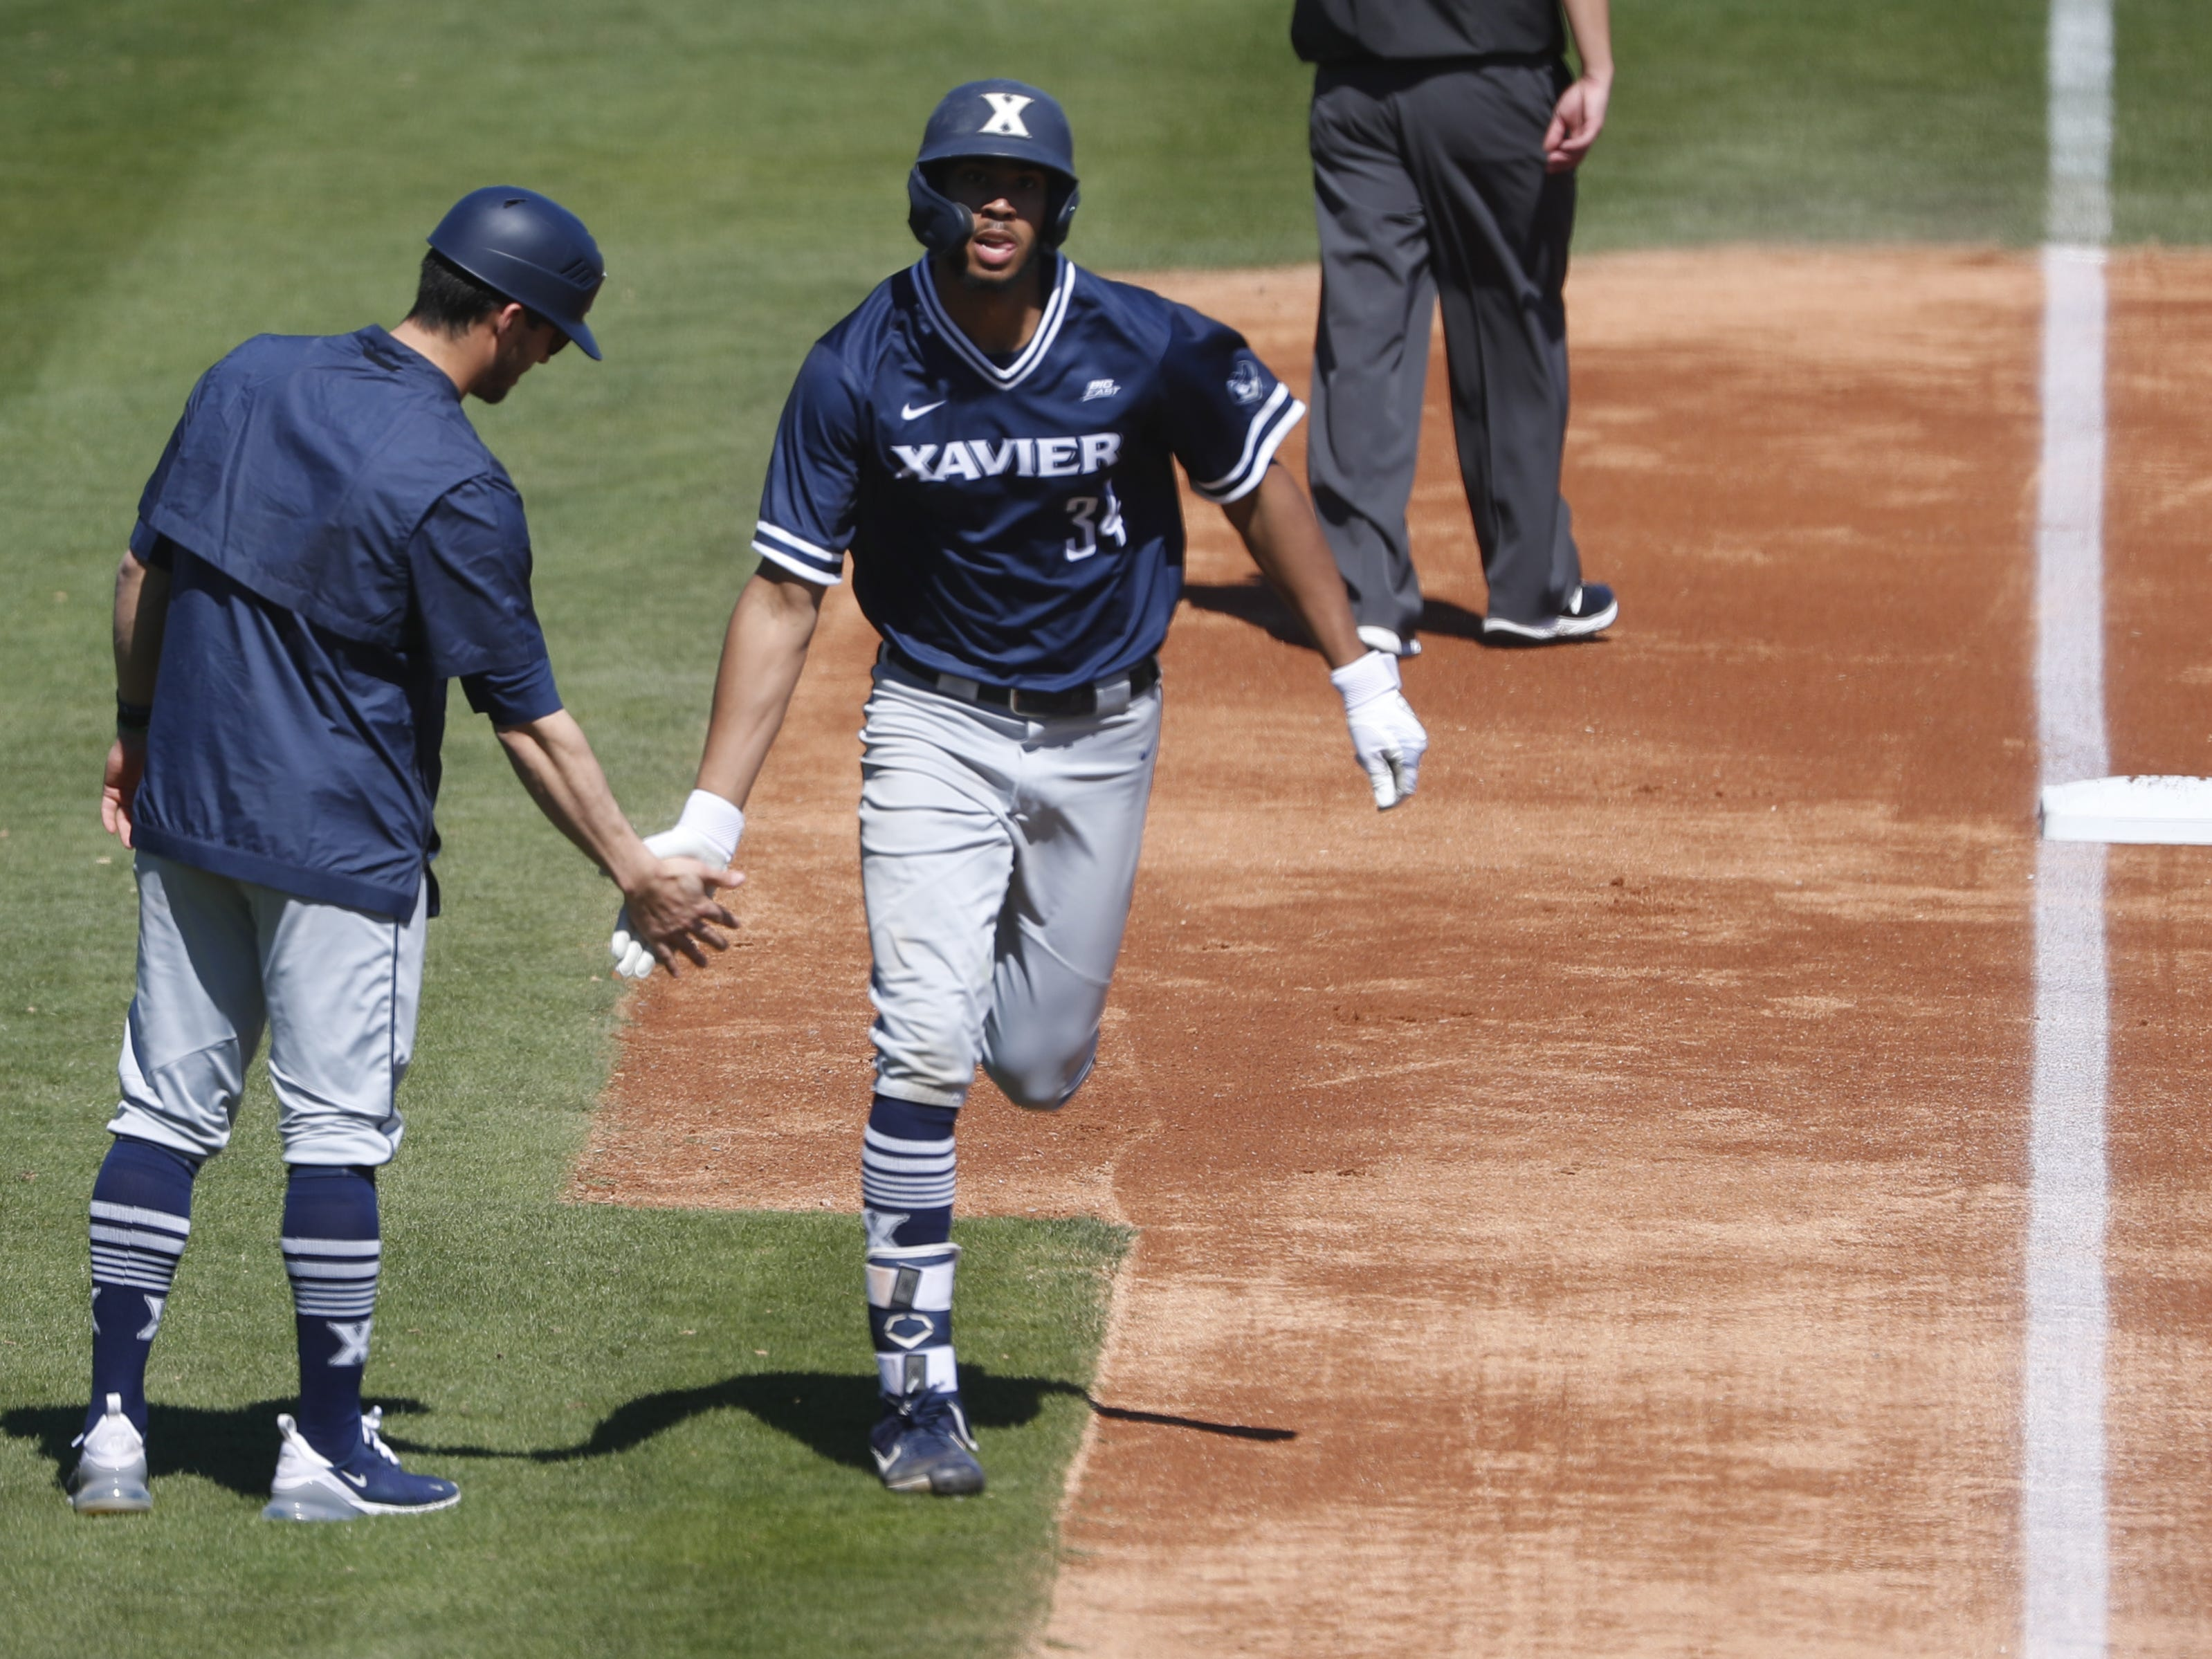 Xavier's Allbry Major (34) rounds third base after hitting a solo home run during the second inning against ASU at Phoenix Municipal Stadium in Phoenix, Ariz. on March 10, 2019.